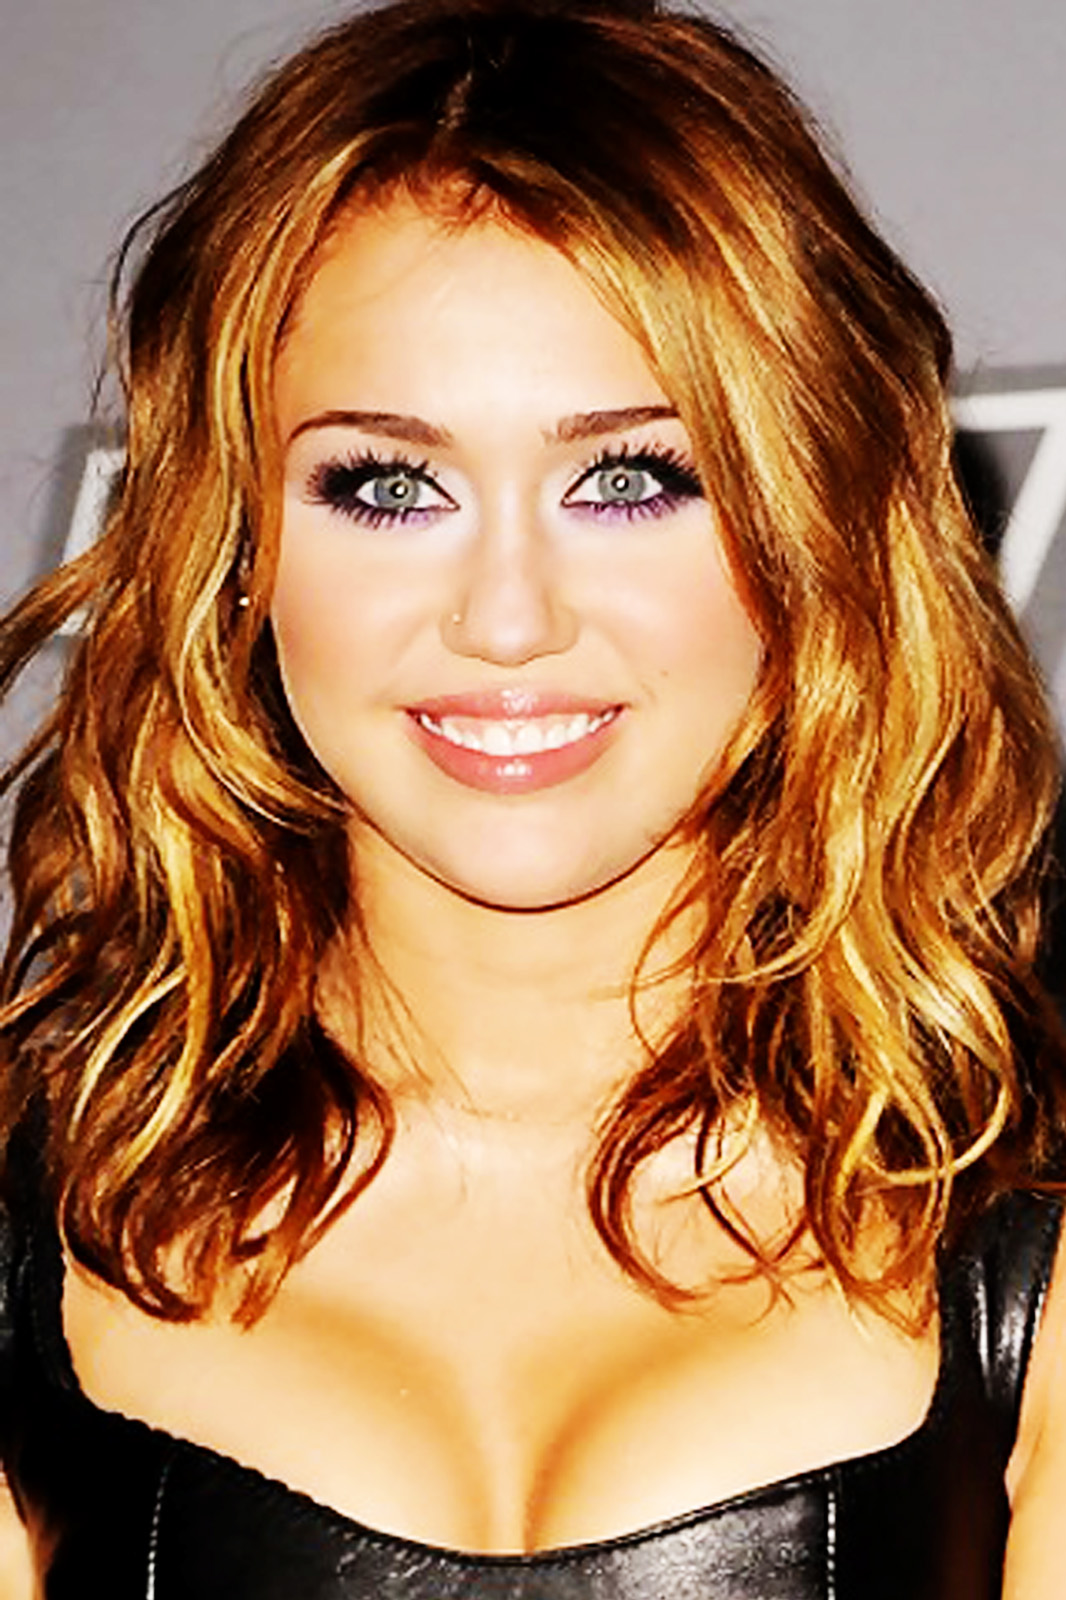 Miley Cyrus Hot Pictures Miley Cyrus wallpapers-5150